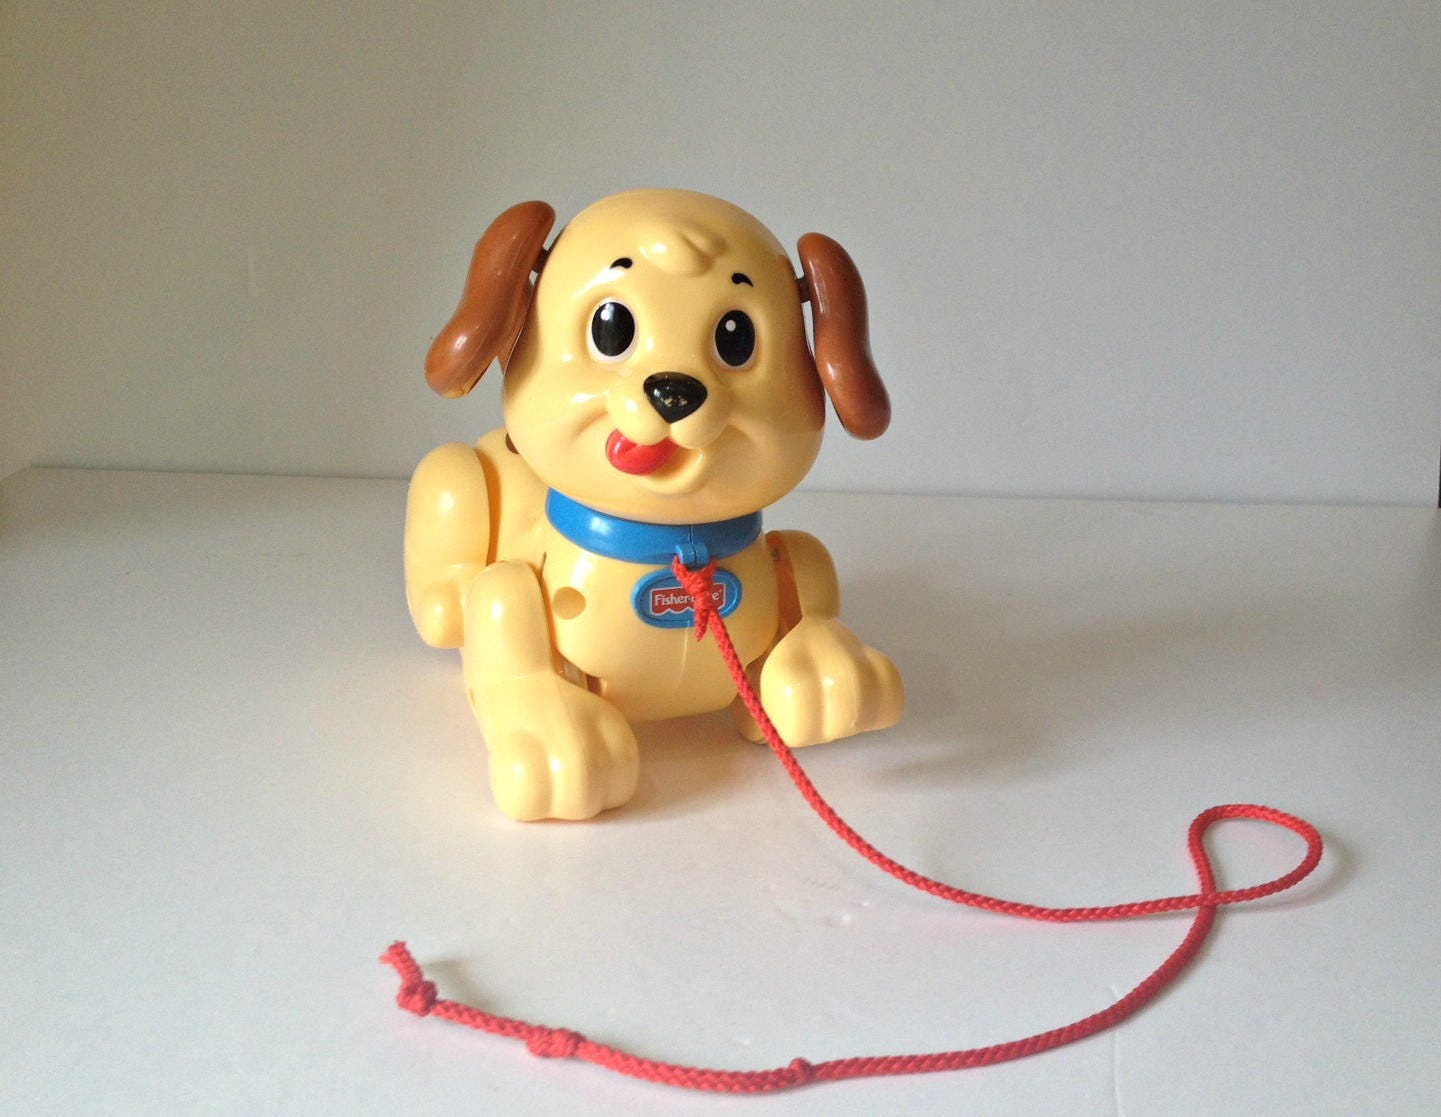 Fisher Price Pull Along Puppy Toy Pull Along Dog Vintage Toy  Pull Along Toy Happy Puppy Vintage Toy Dog Vintage Puppy Retro Toy Dog